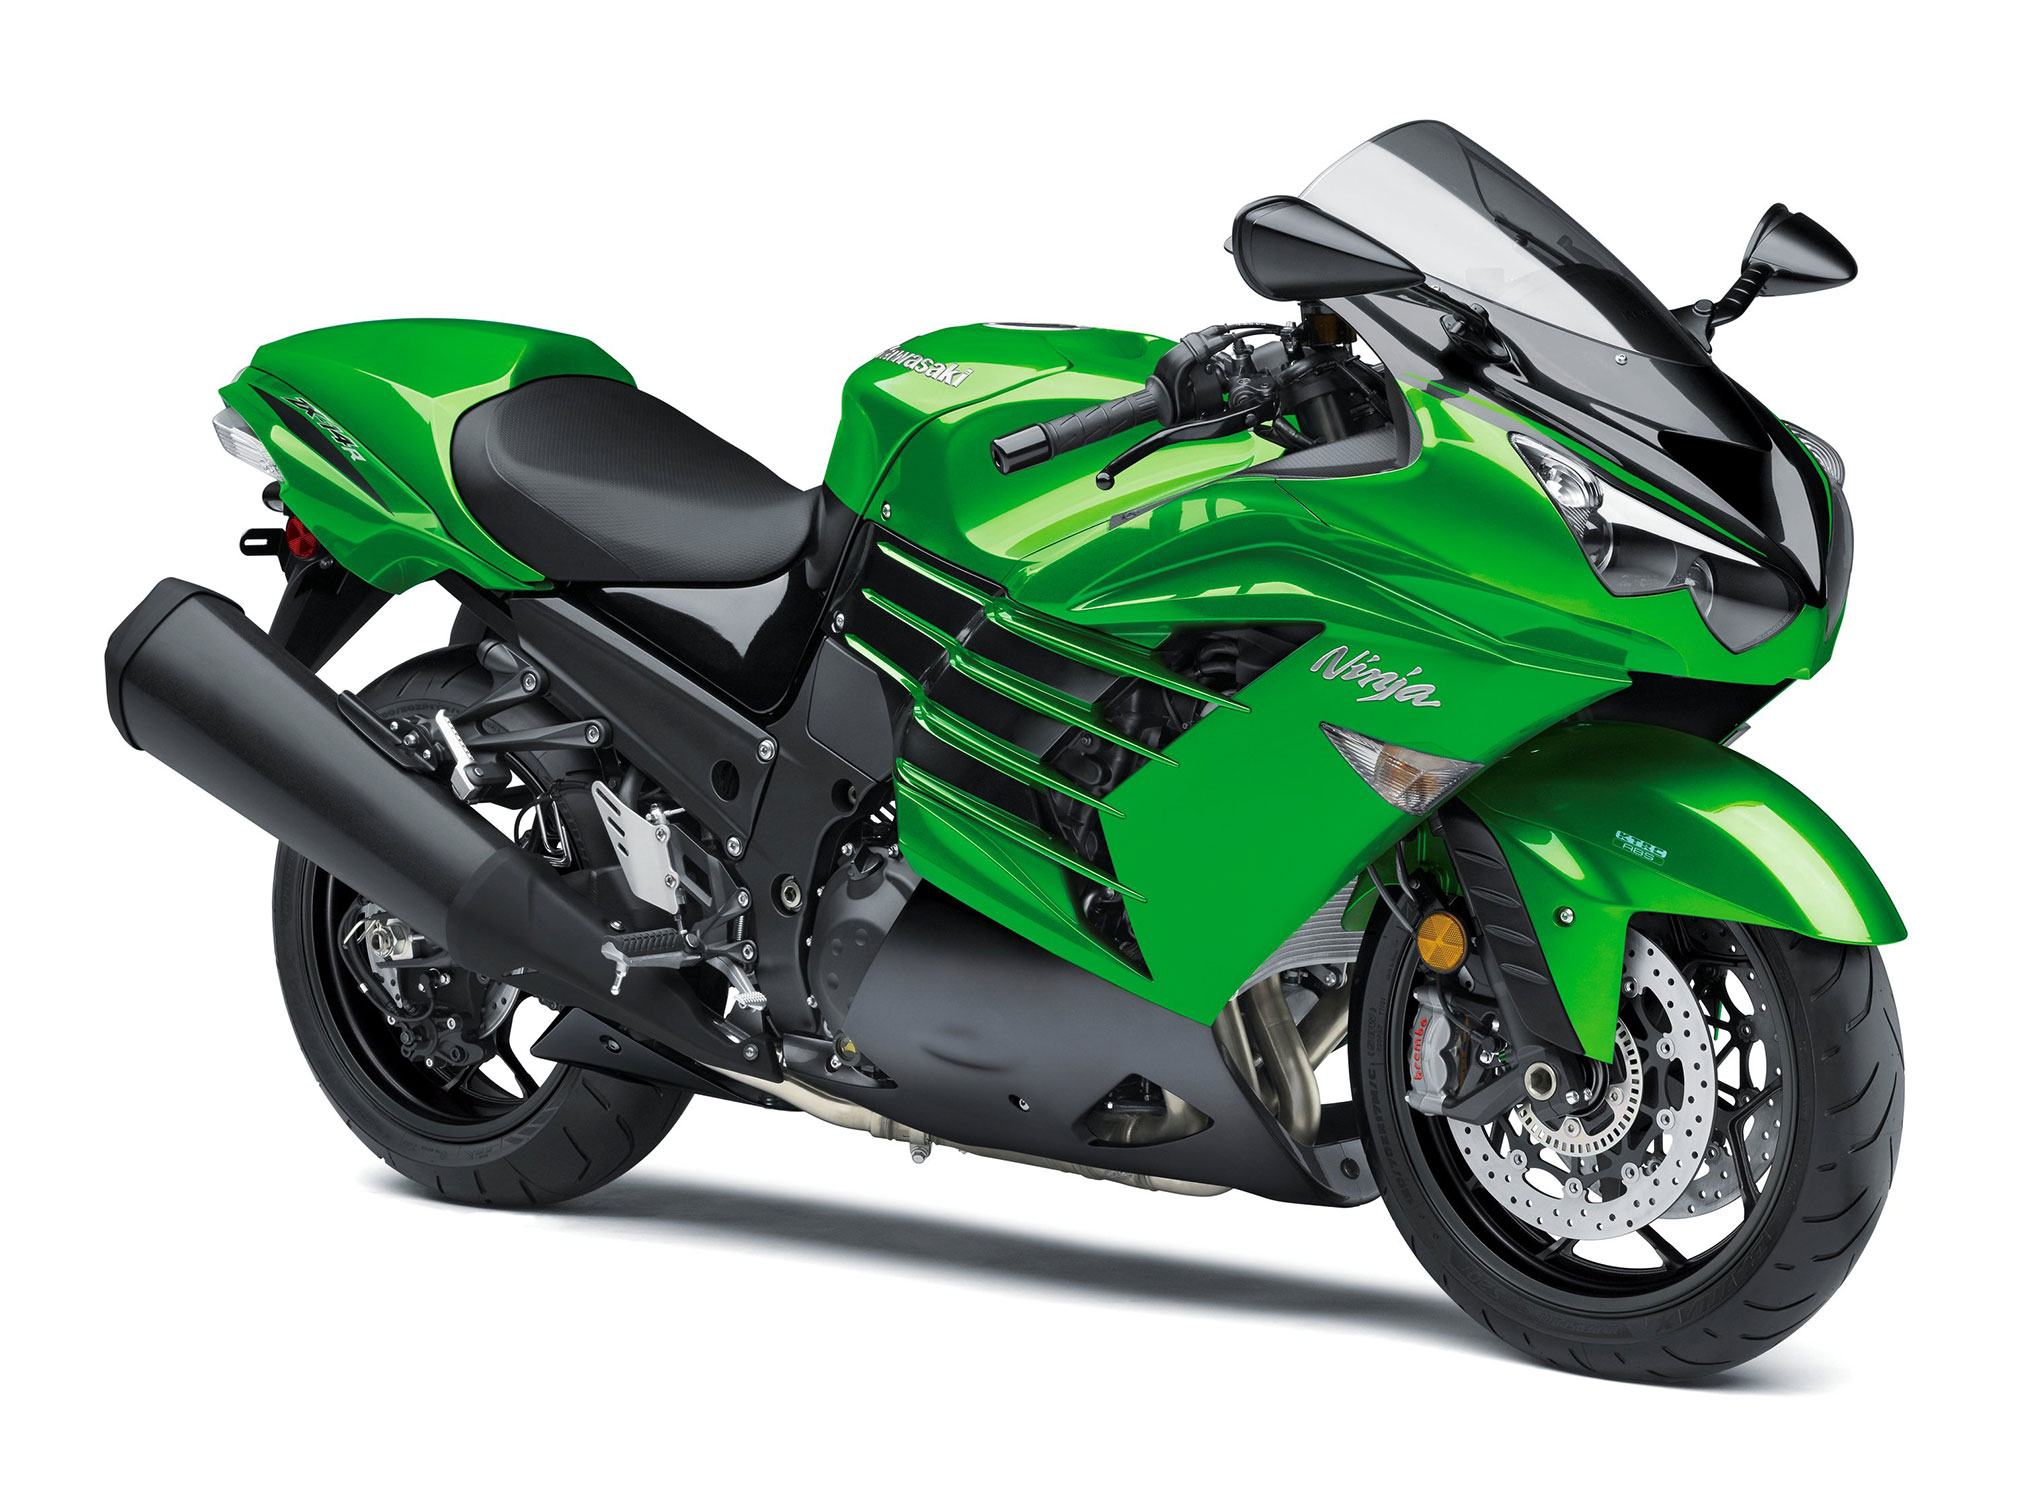 2017 kawasaki ninja zx 14r abs se review. Black Bedroom Furniture Sets. Home Design Ideas